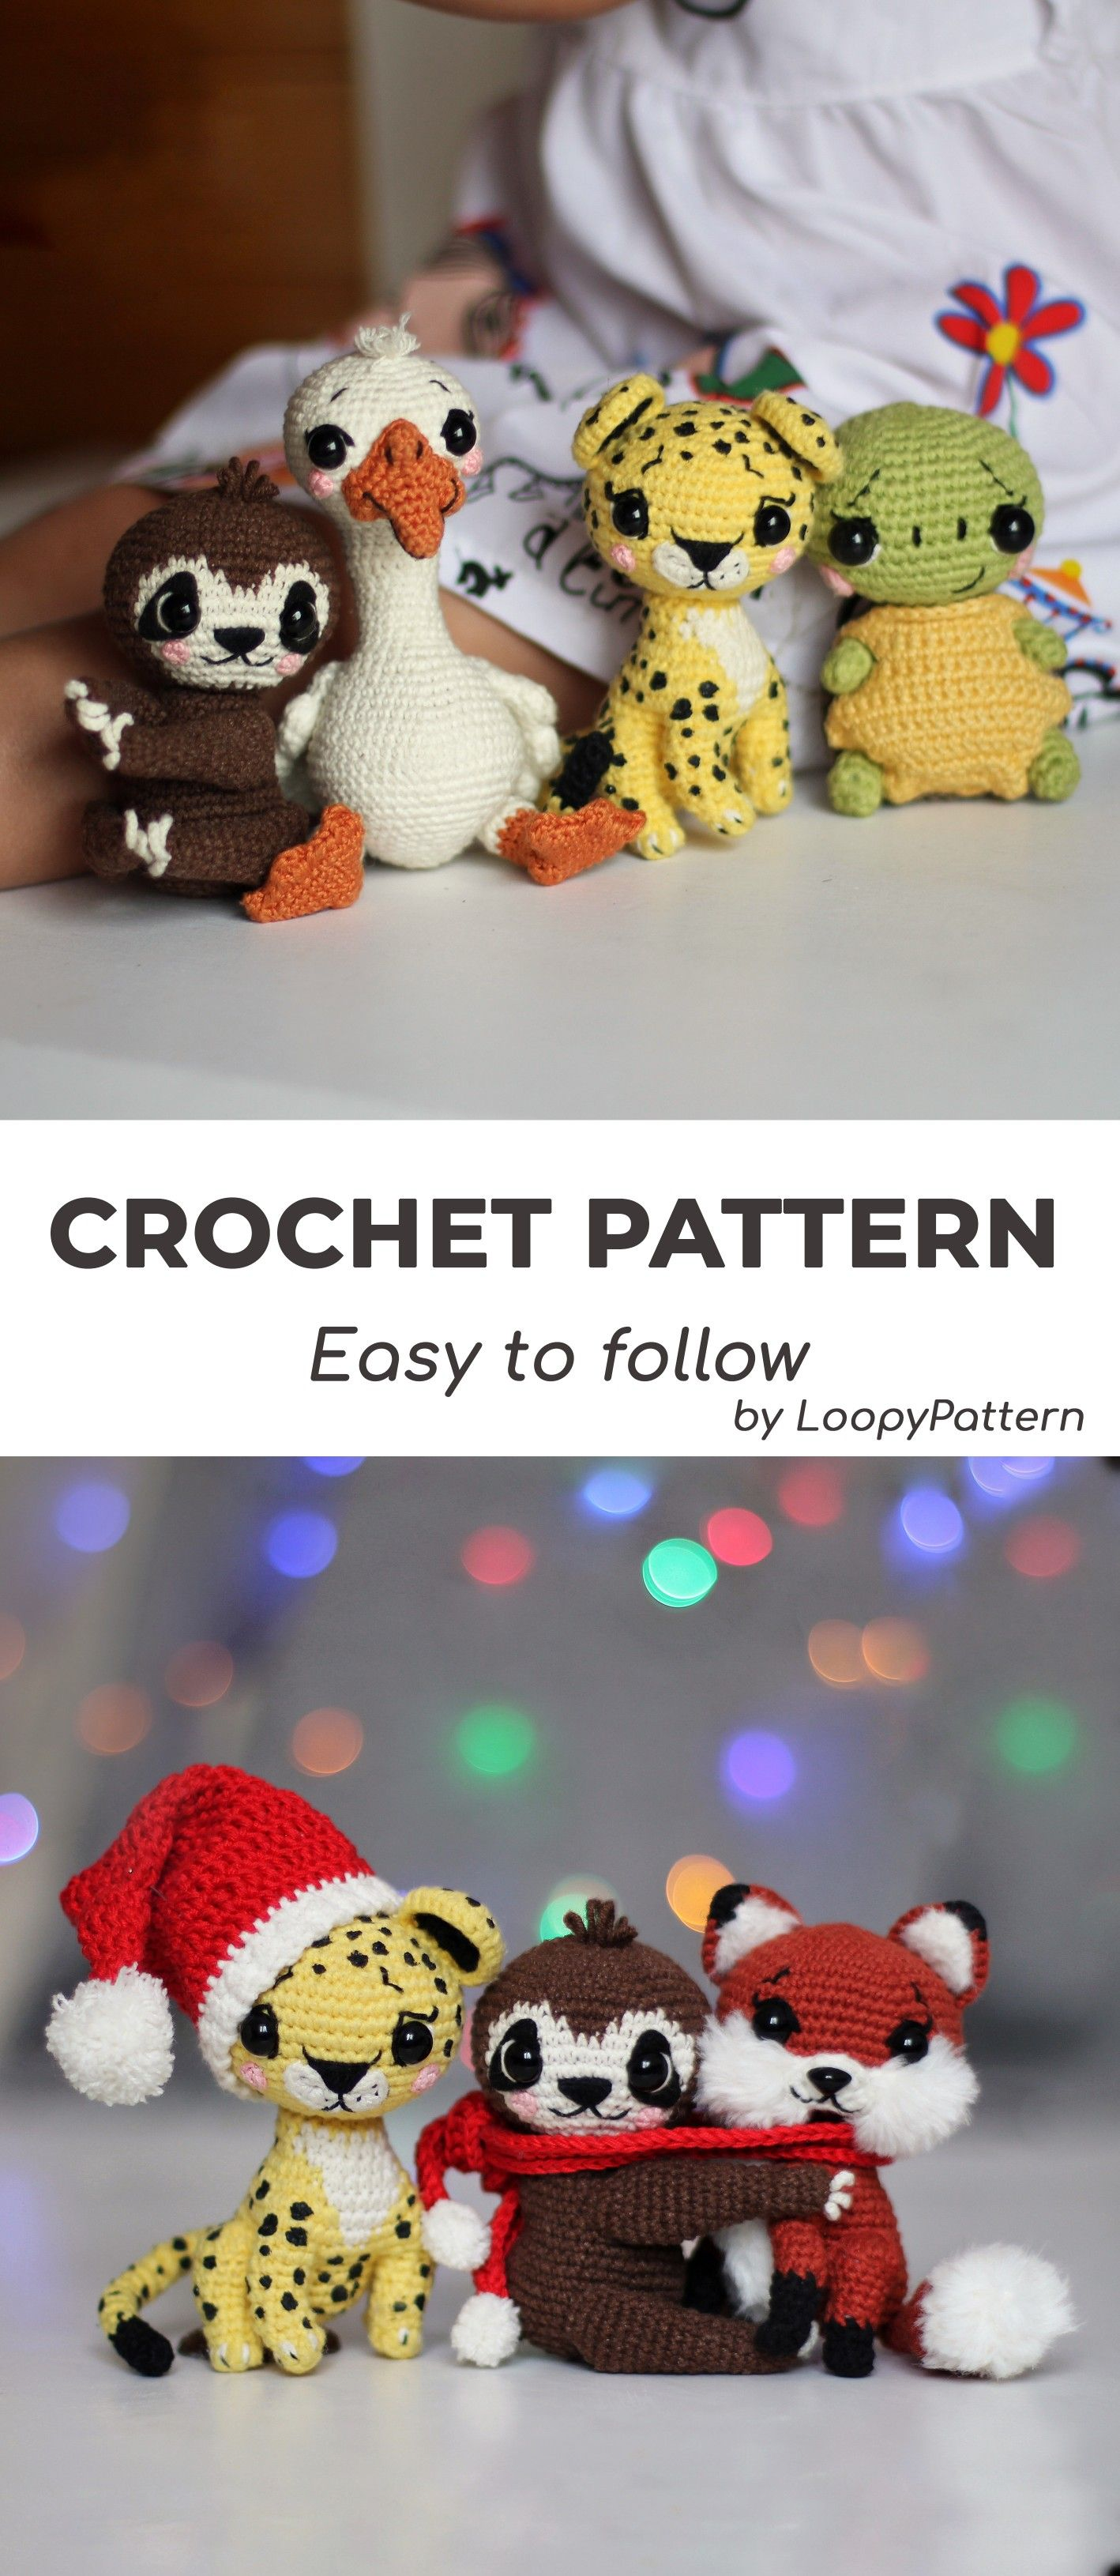 AMIGURUMI pattern crochet toys by LoopyPattern #stuffedtoyspatterns